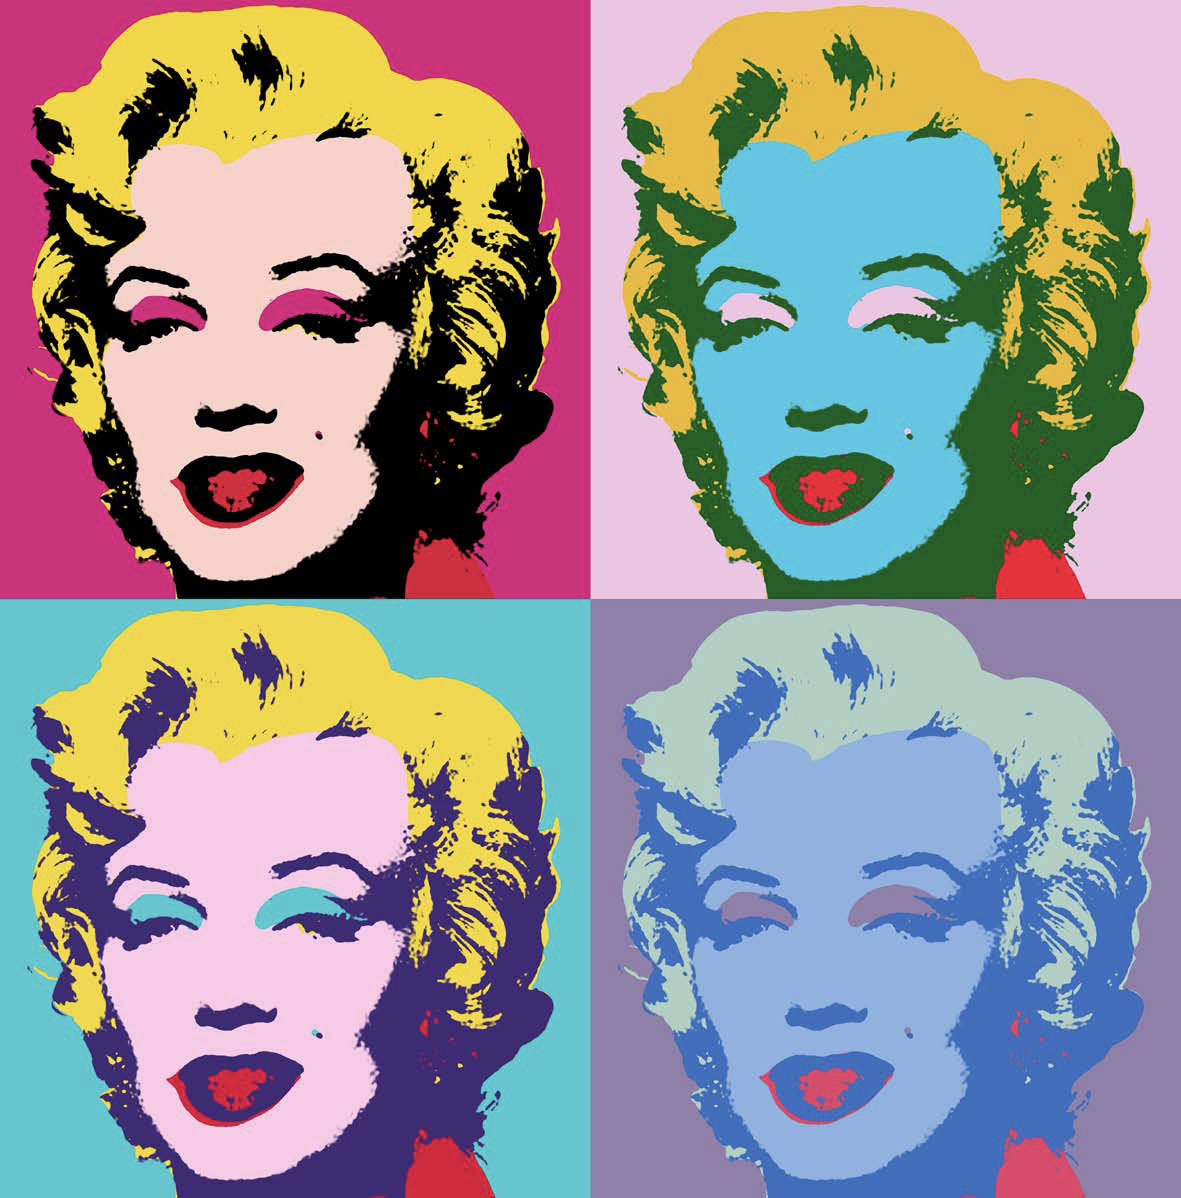 Marilyn Monroe by Andy Warhol - postmodernism art